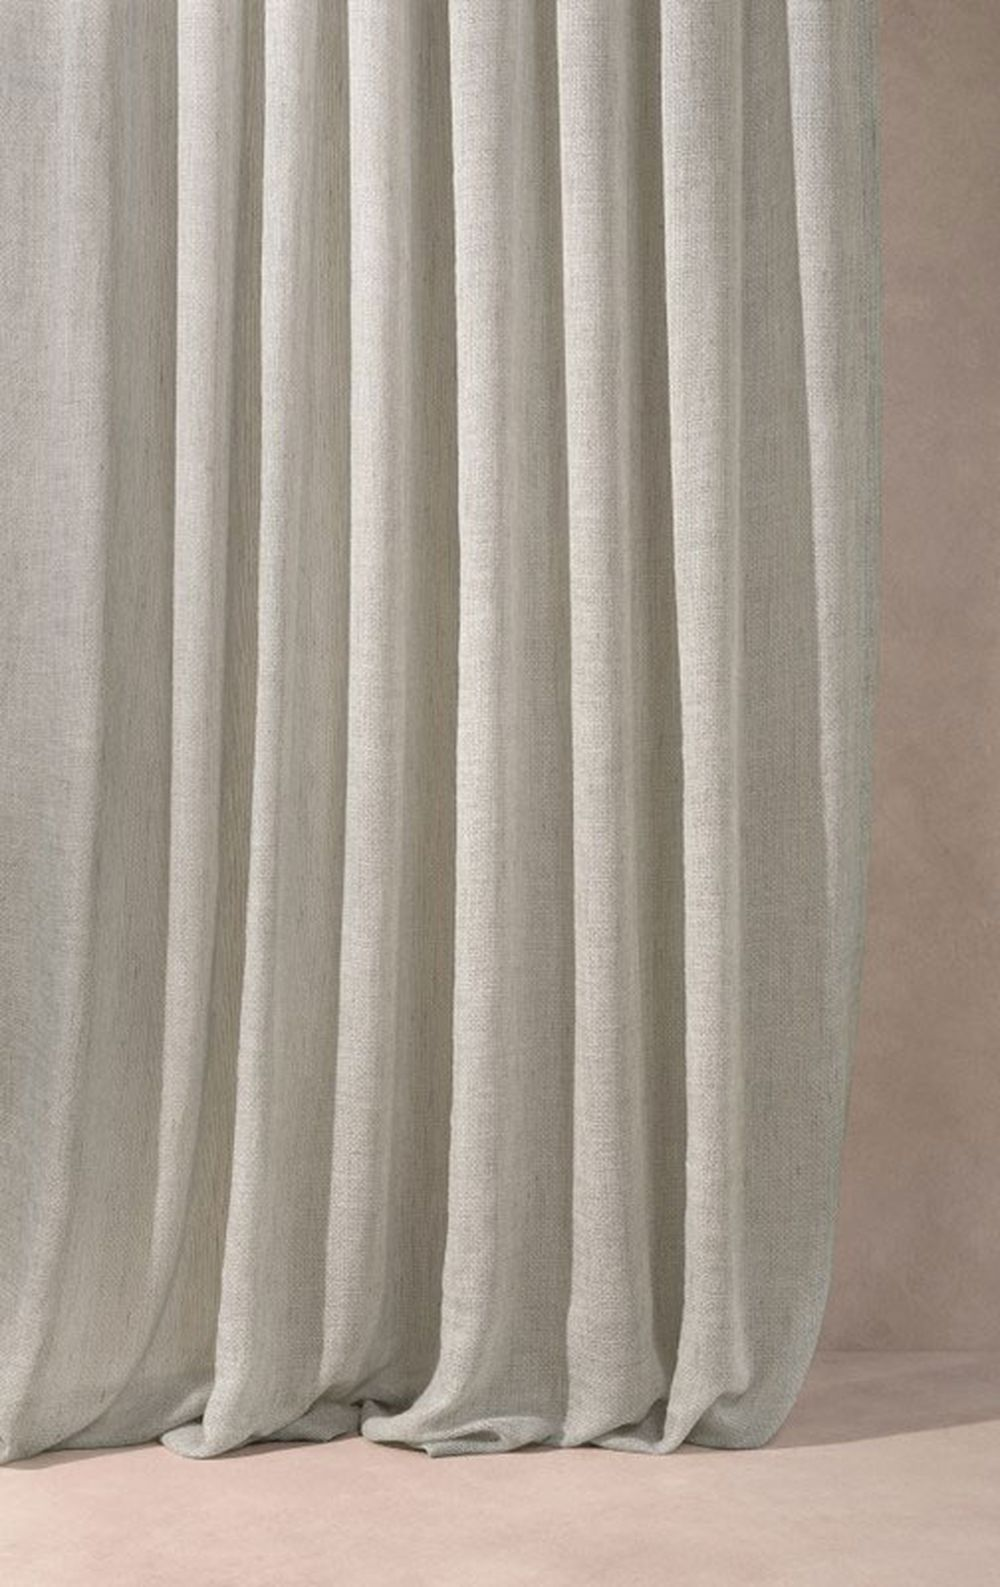 Photo of the fabric Kensho* Oyster in situ by Mokum. Use for Drapery Sheer. Style of Plain, Sheer